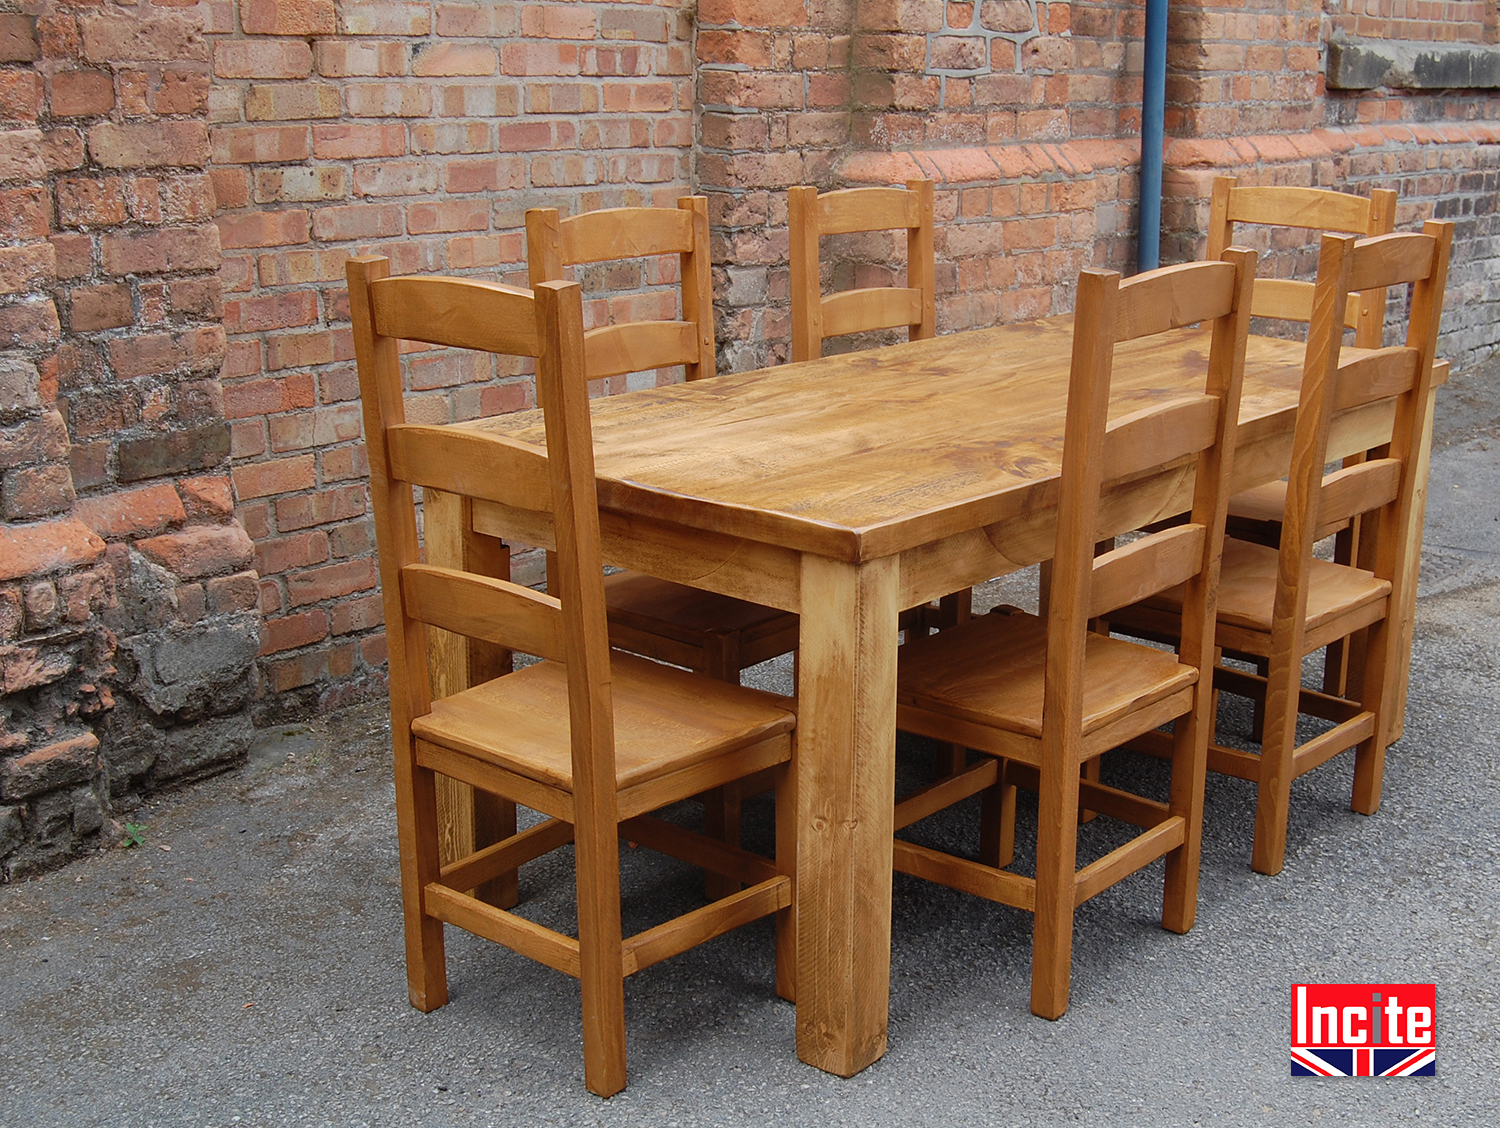 farmhouse tables cut com rustic used bread making loveantiques century for table antique pine wood